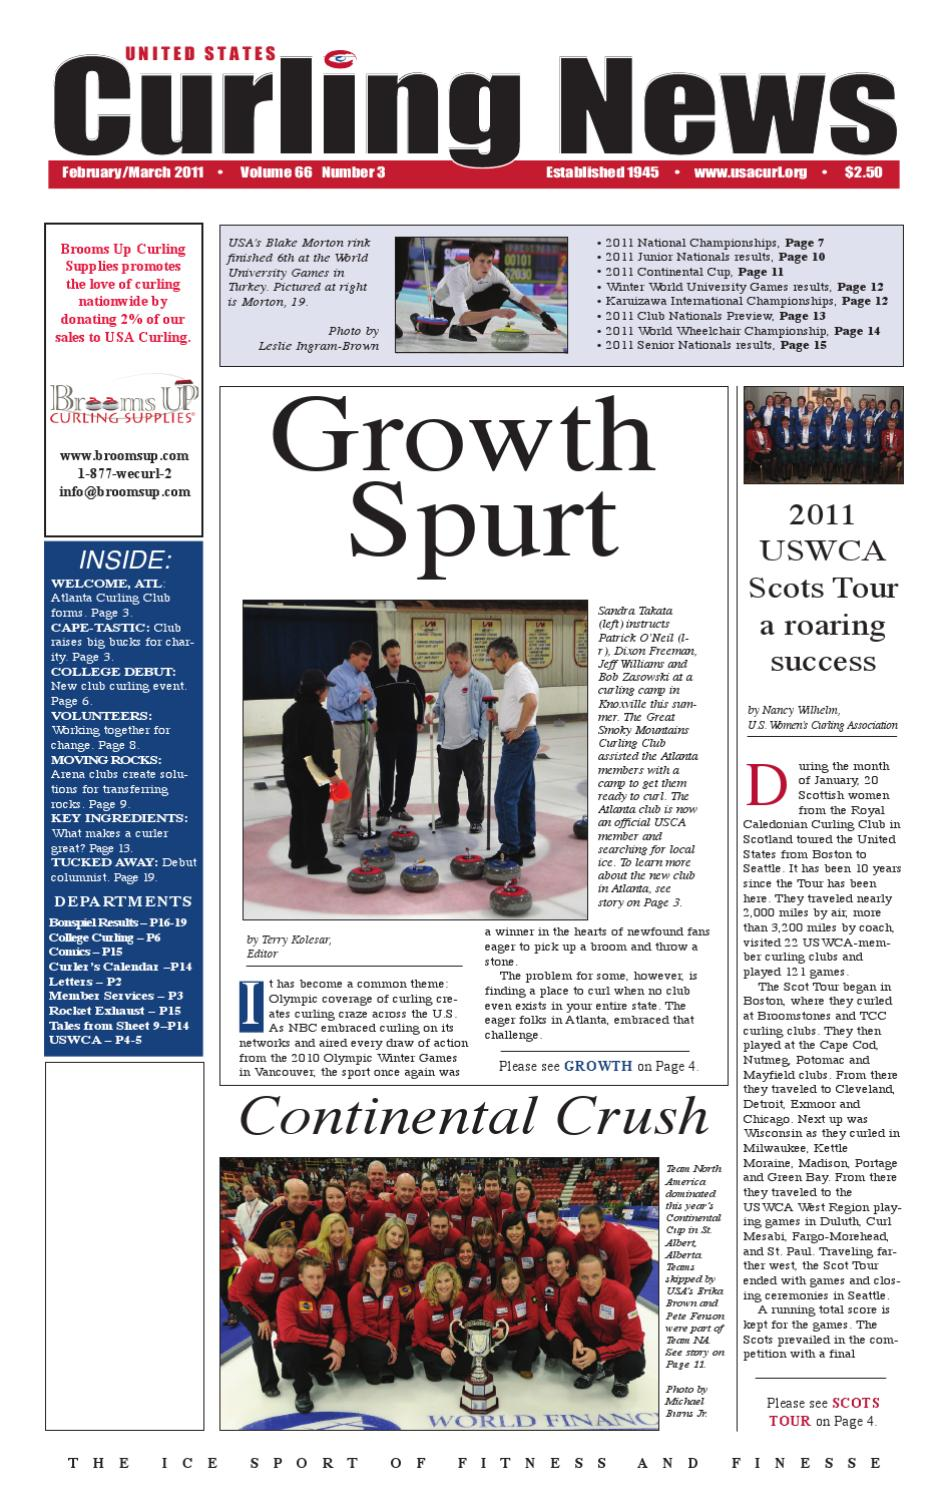 Us Curling News February 2011 By Usa Curling Issuu